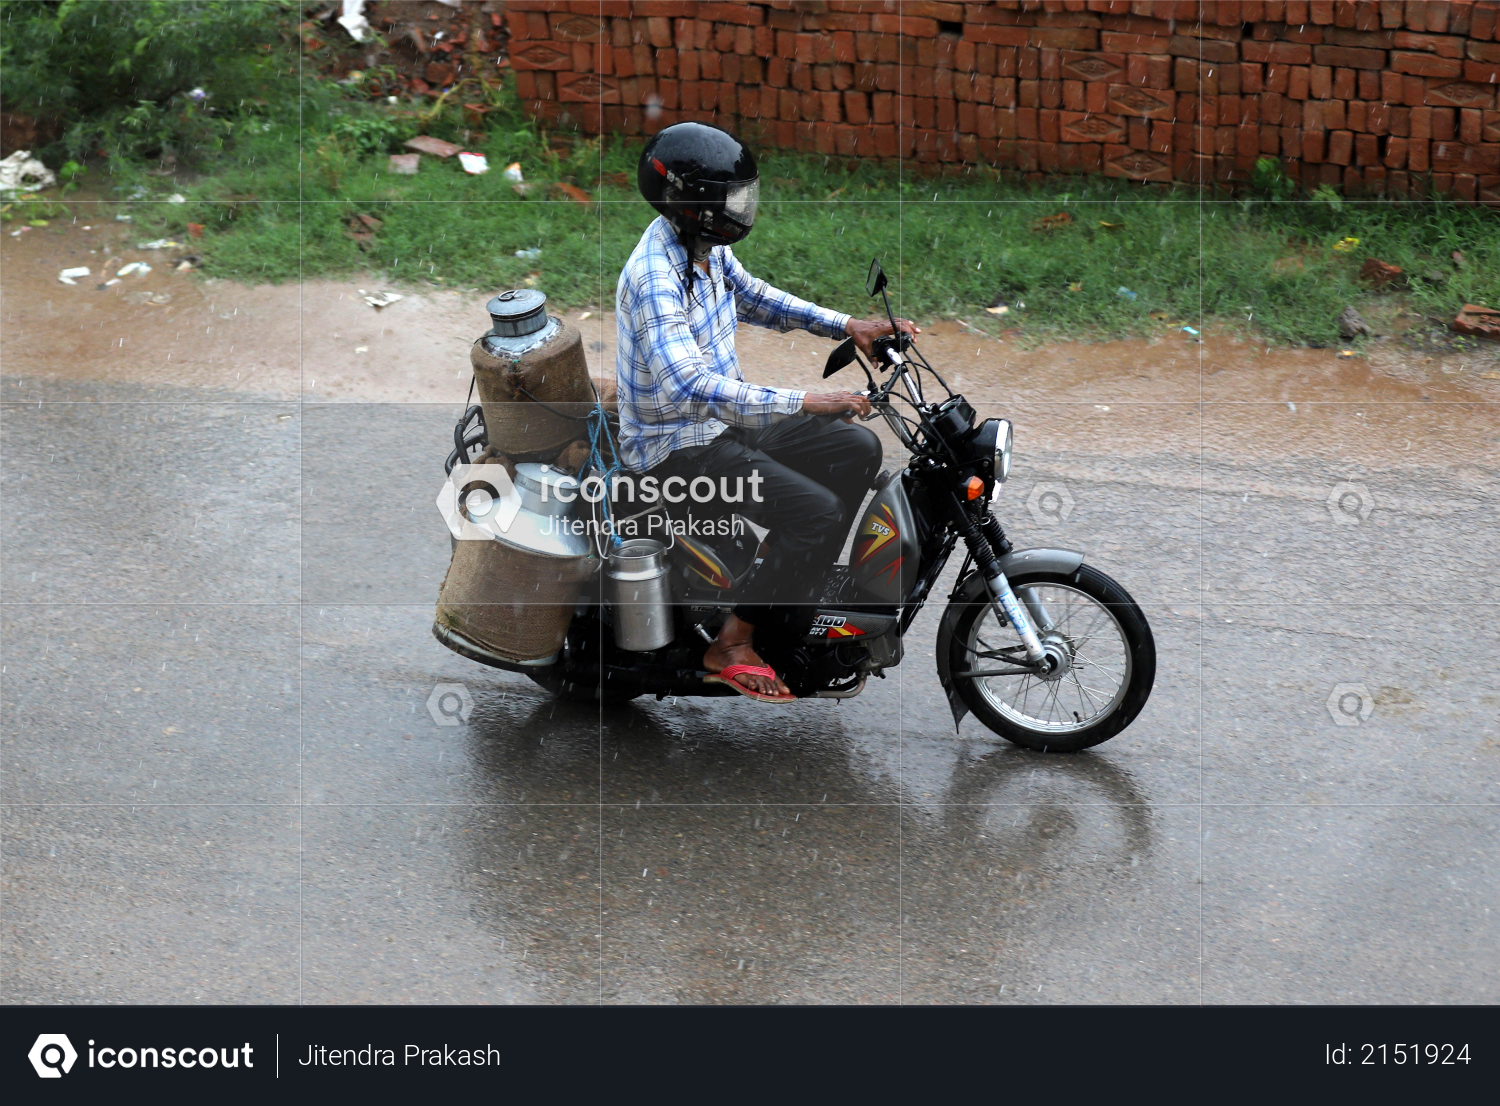 A milkman is riding his motorcycle with milk cans in heavy rain - Monsoon Photo